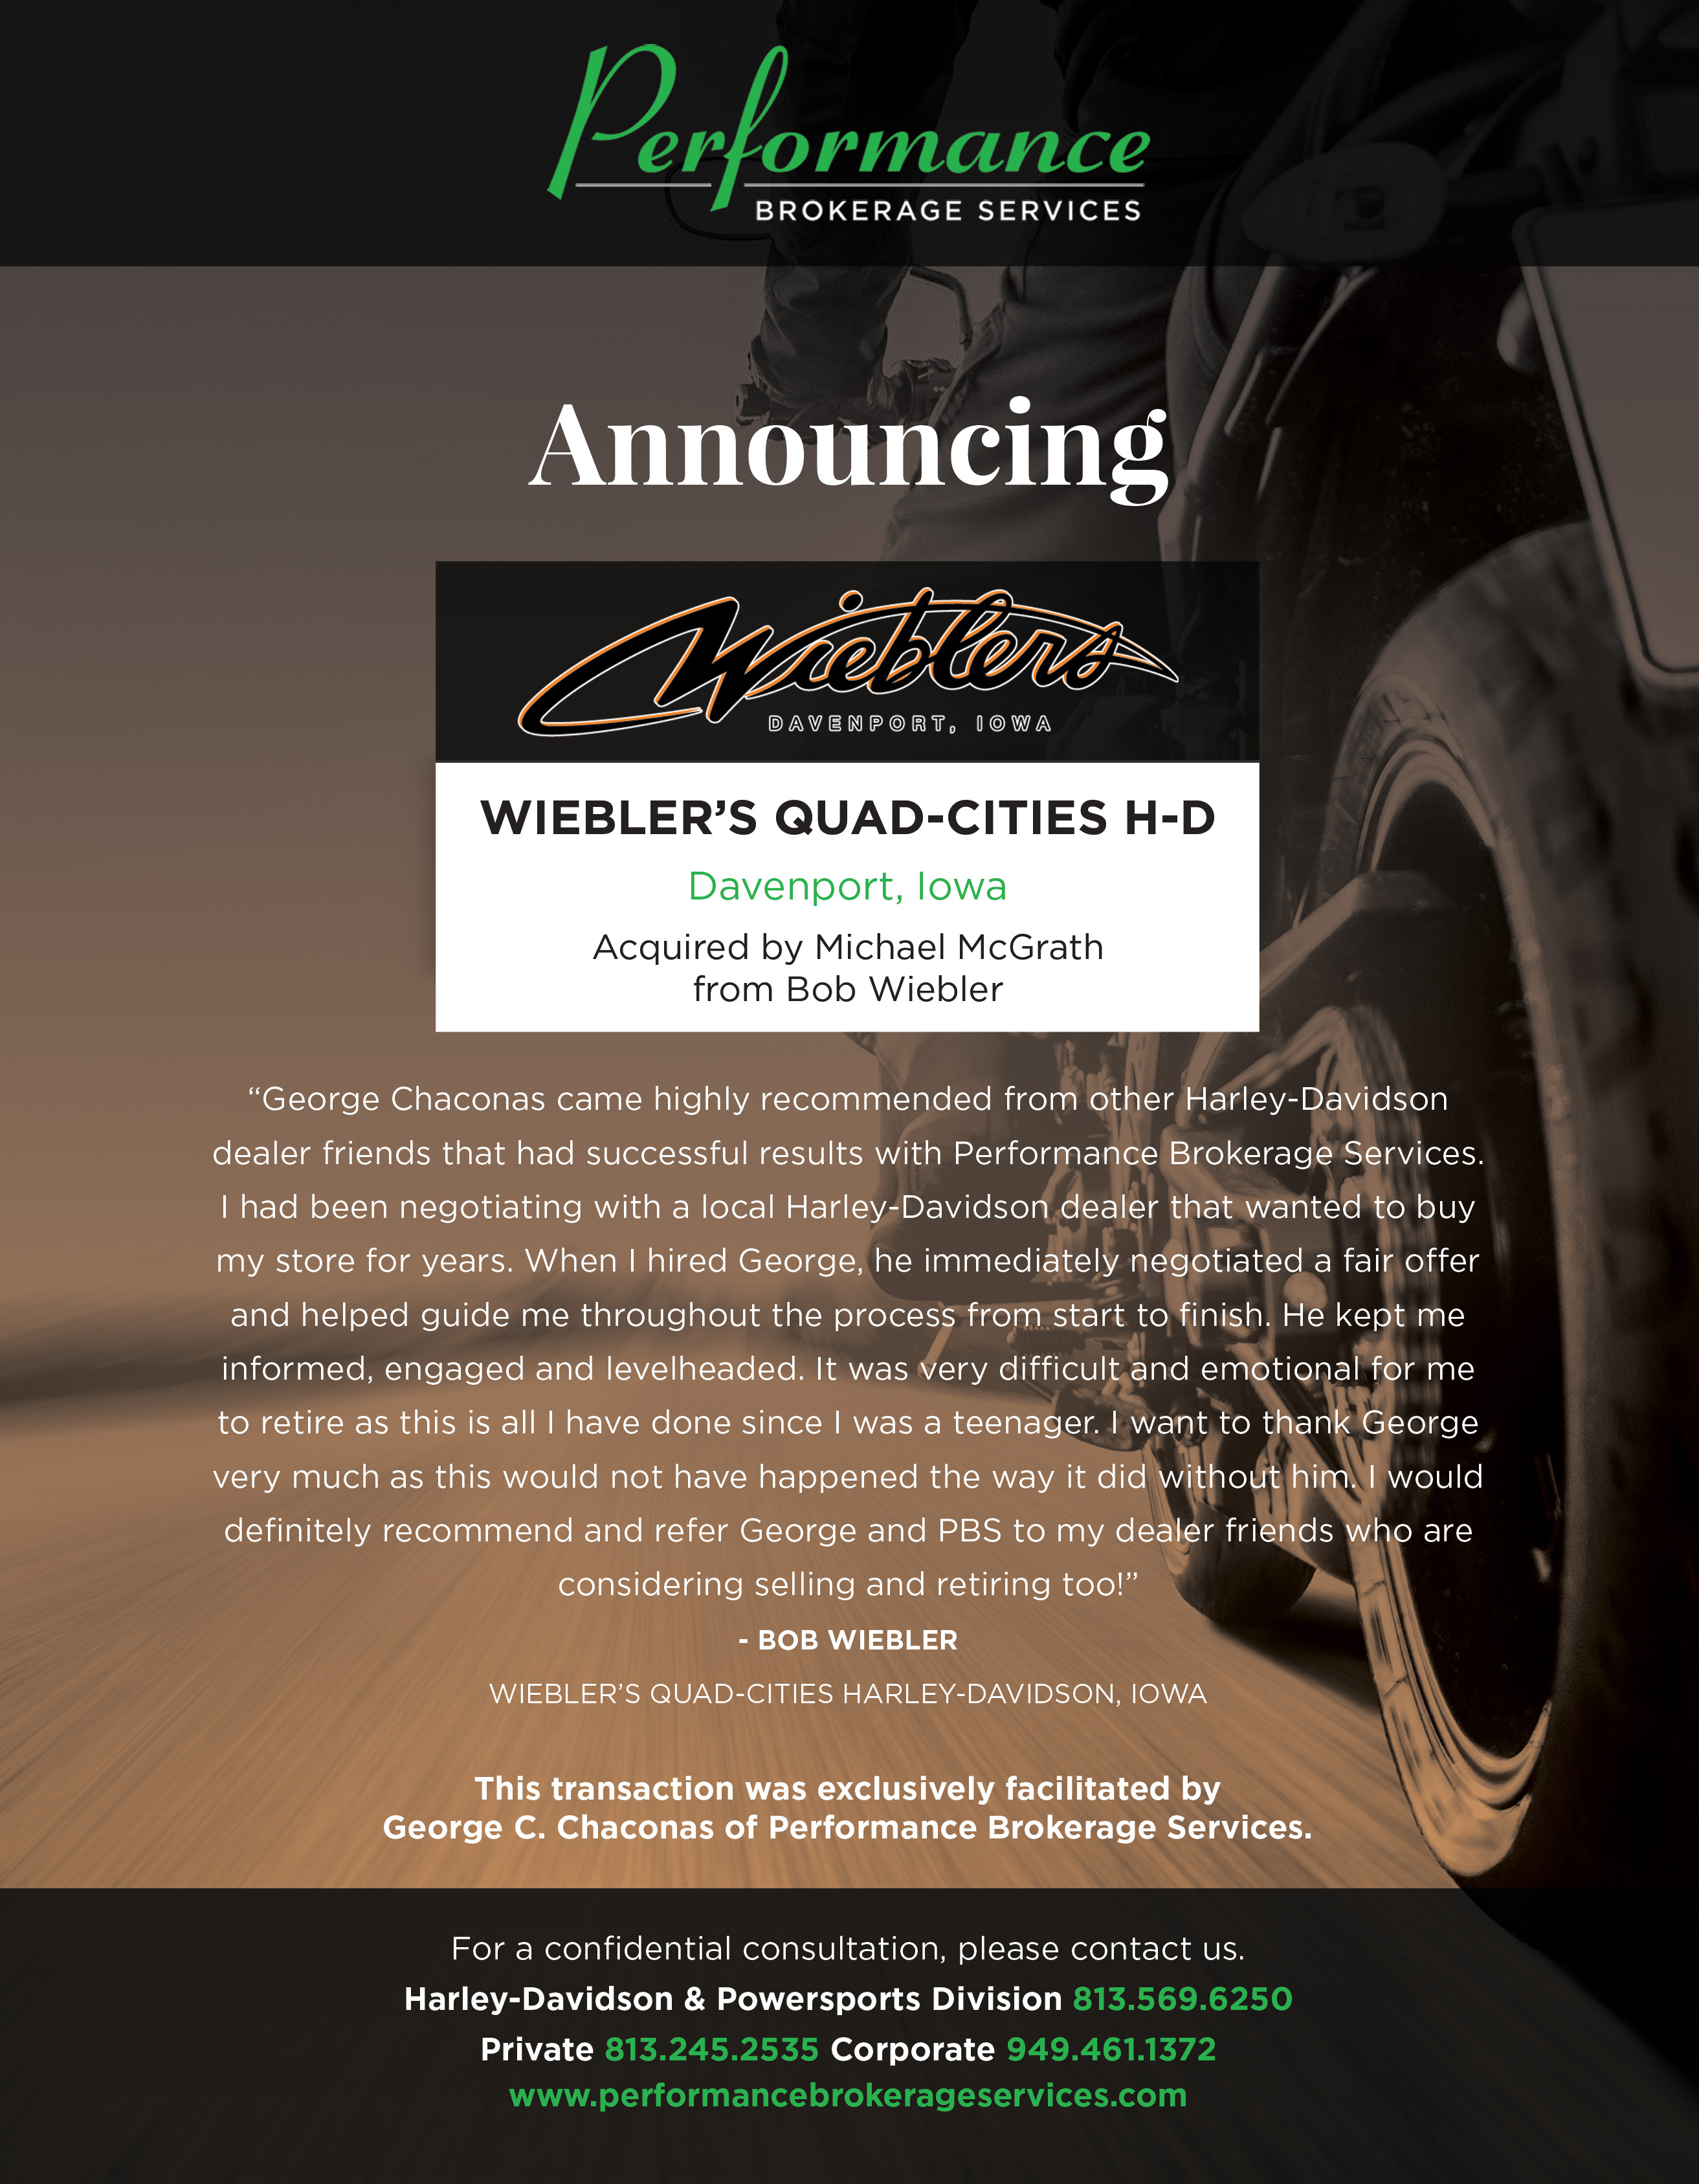 Performance Brokerage Services, Inc. sale of Wiebler's Quad-Cities Harley-Davidson